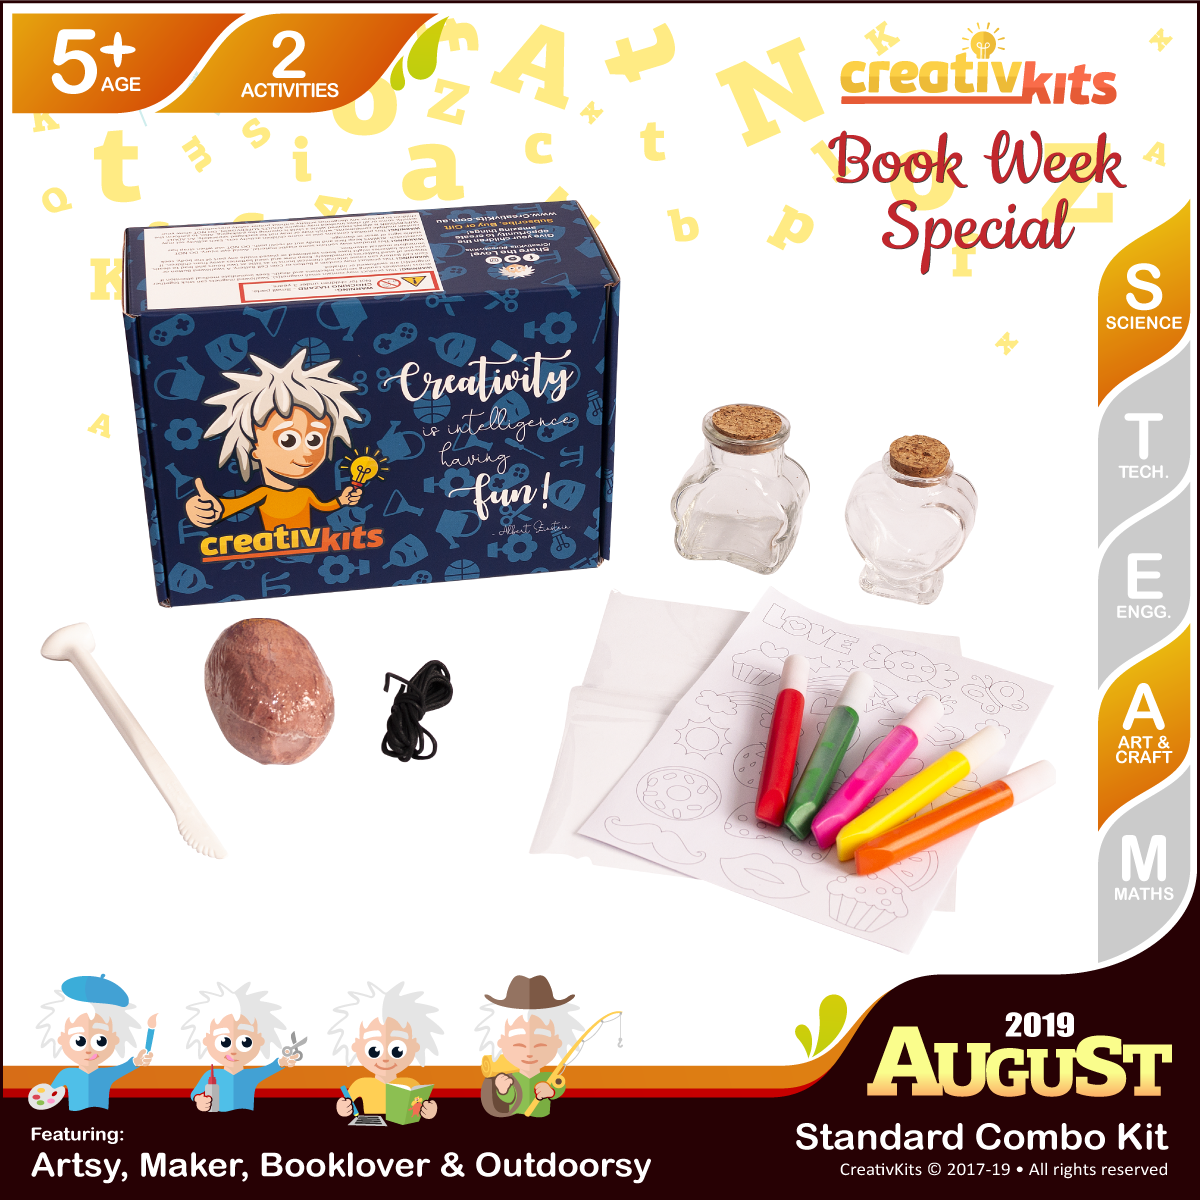 August Standard Combo Kit • Age 5 plus • Shark Tooth Fossil and Sand Art Bottle Replicas